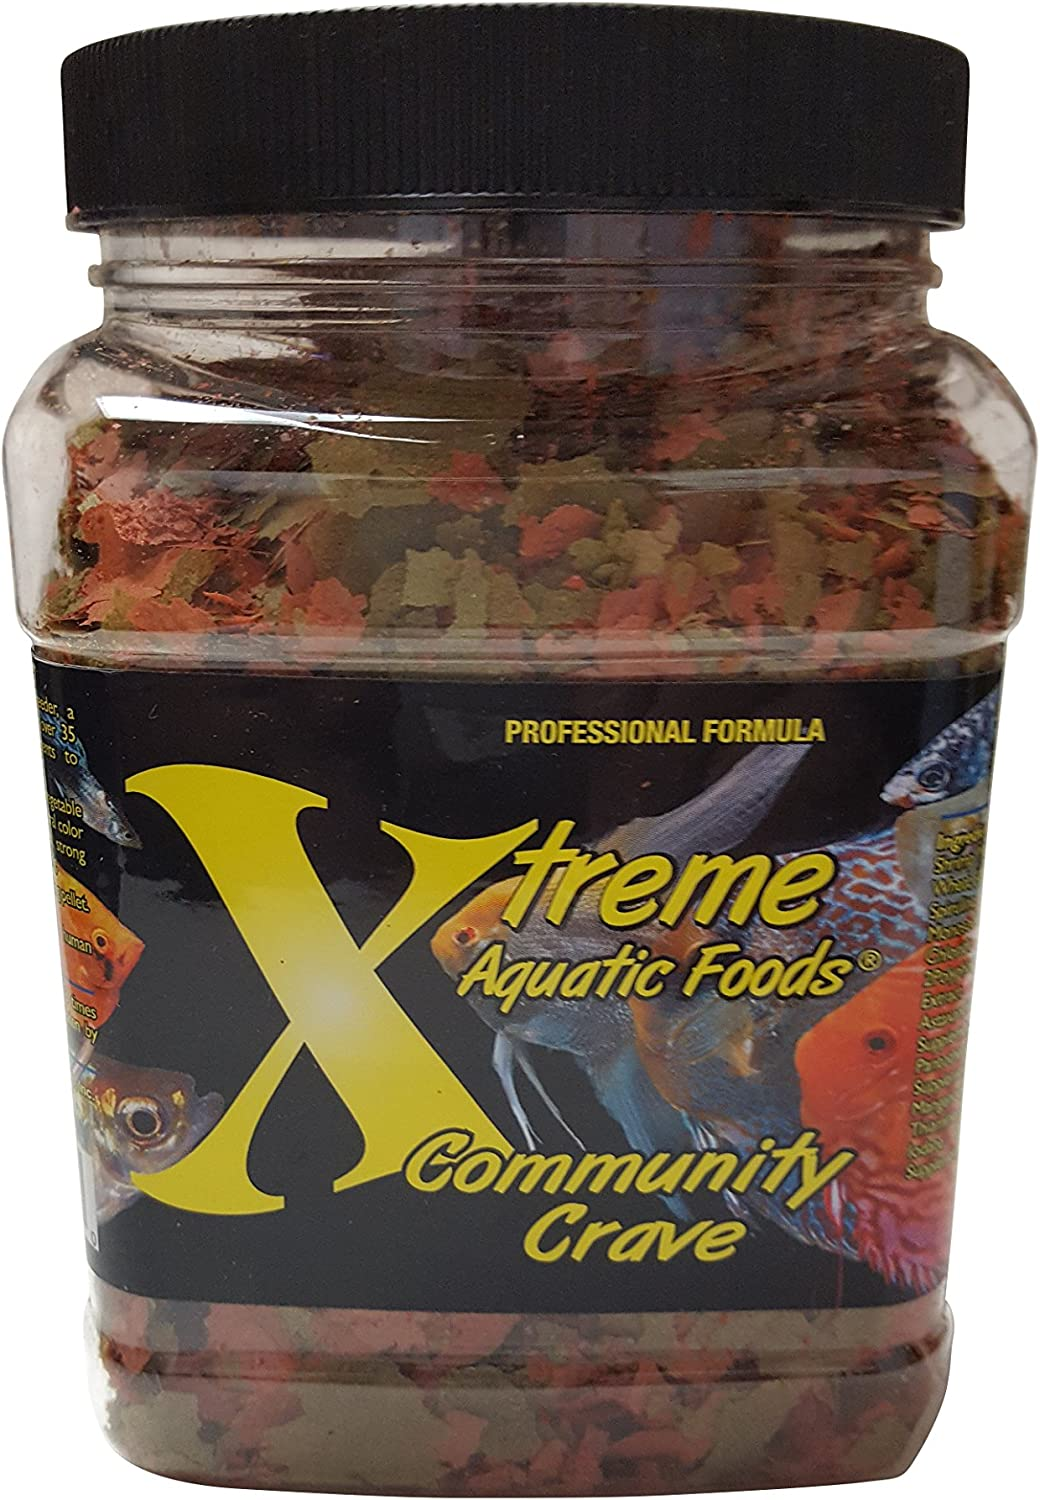 Xtreme Aquatic Foods 2218-E Community Crave Flake, 3 oz